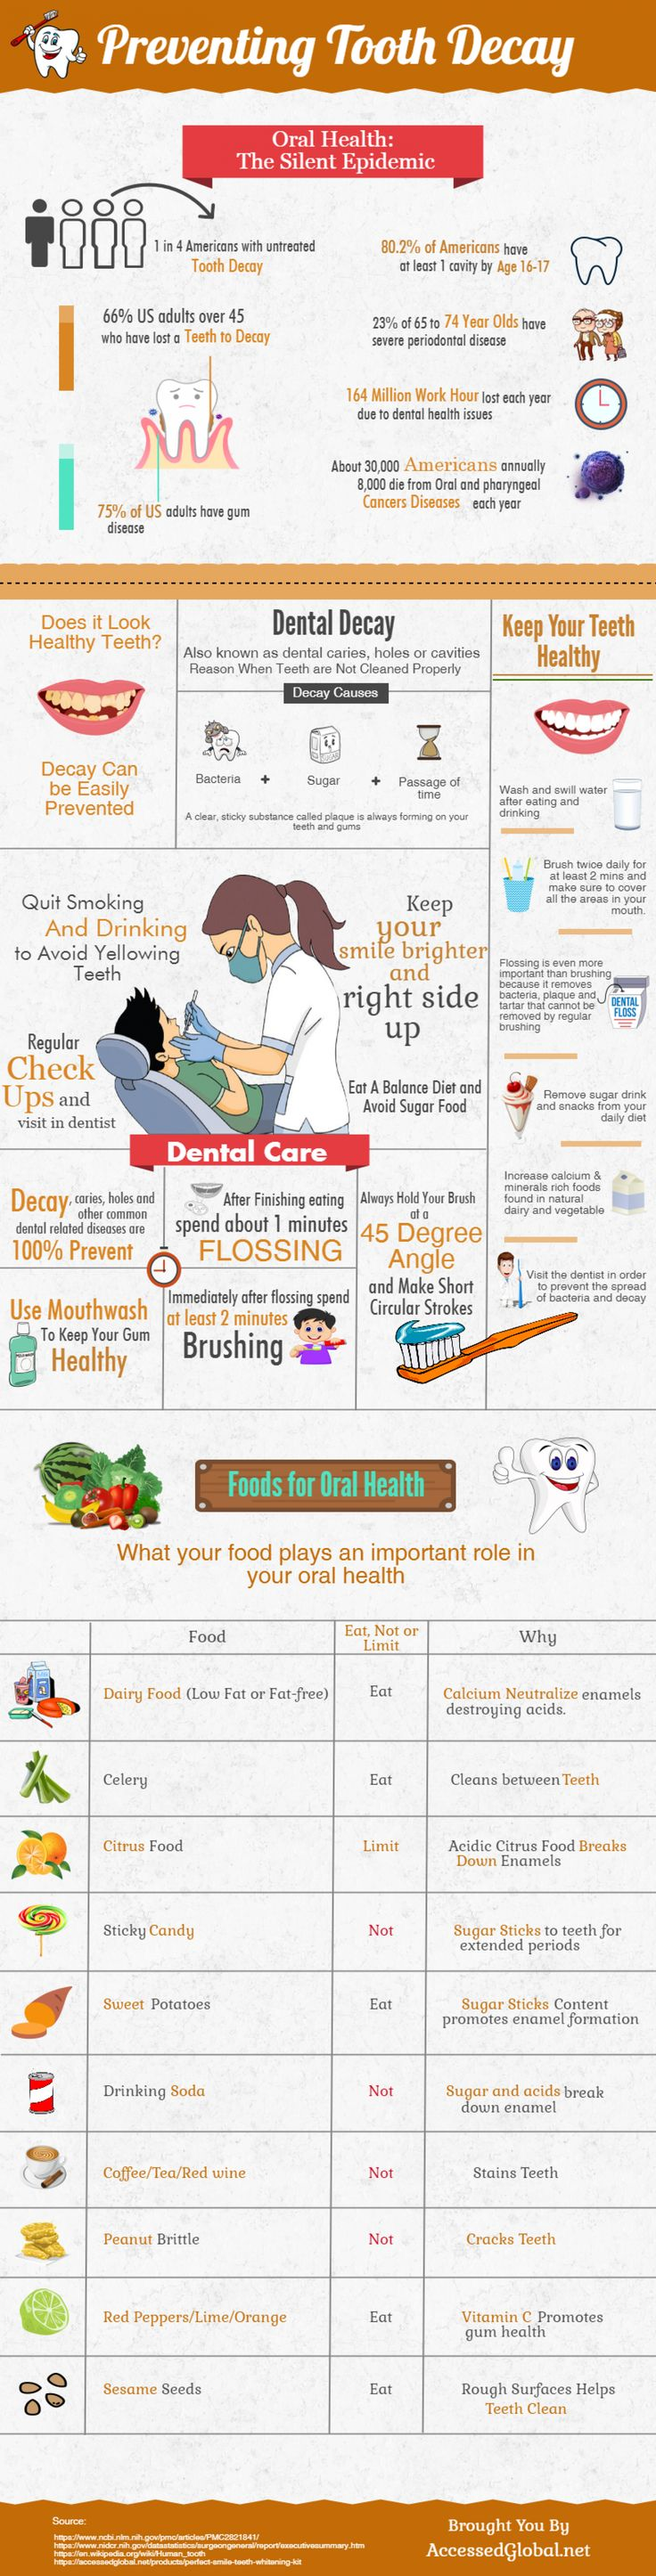 Plaques on your teeth harbor bacteria that further build up stains, and ultimately cause tooth decay. So brushing and flossing your teeth regularly and efficiently is the key to maintaining your teeth naturally white. If you are still not satisfied you ca